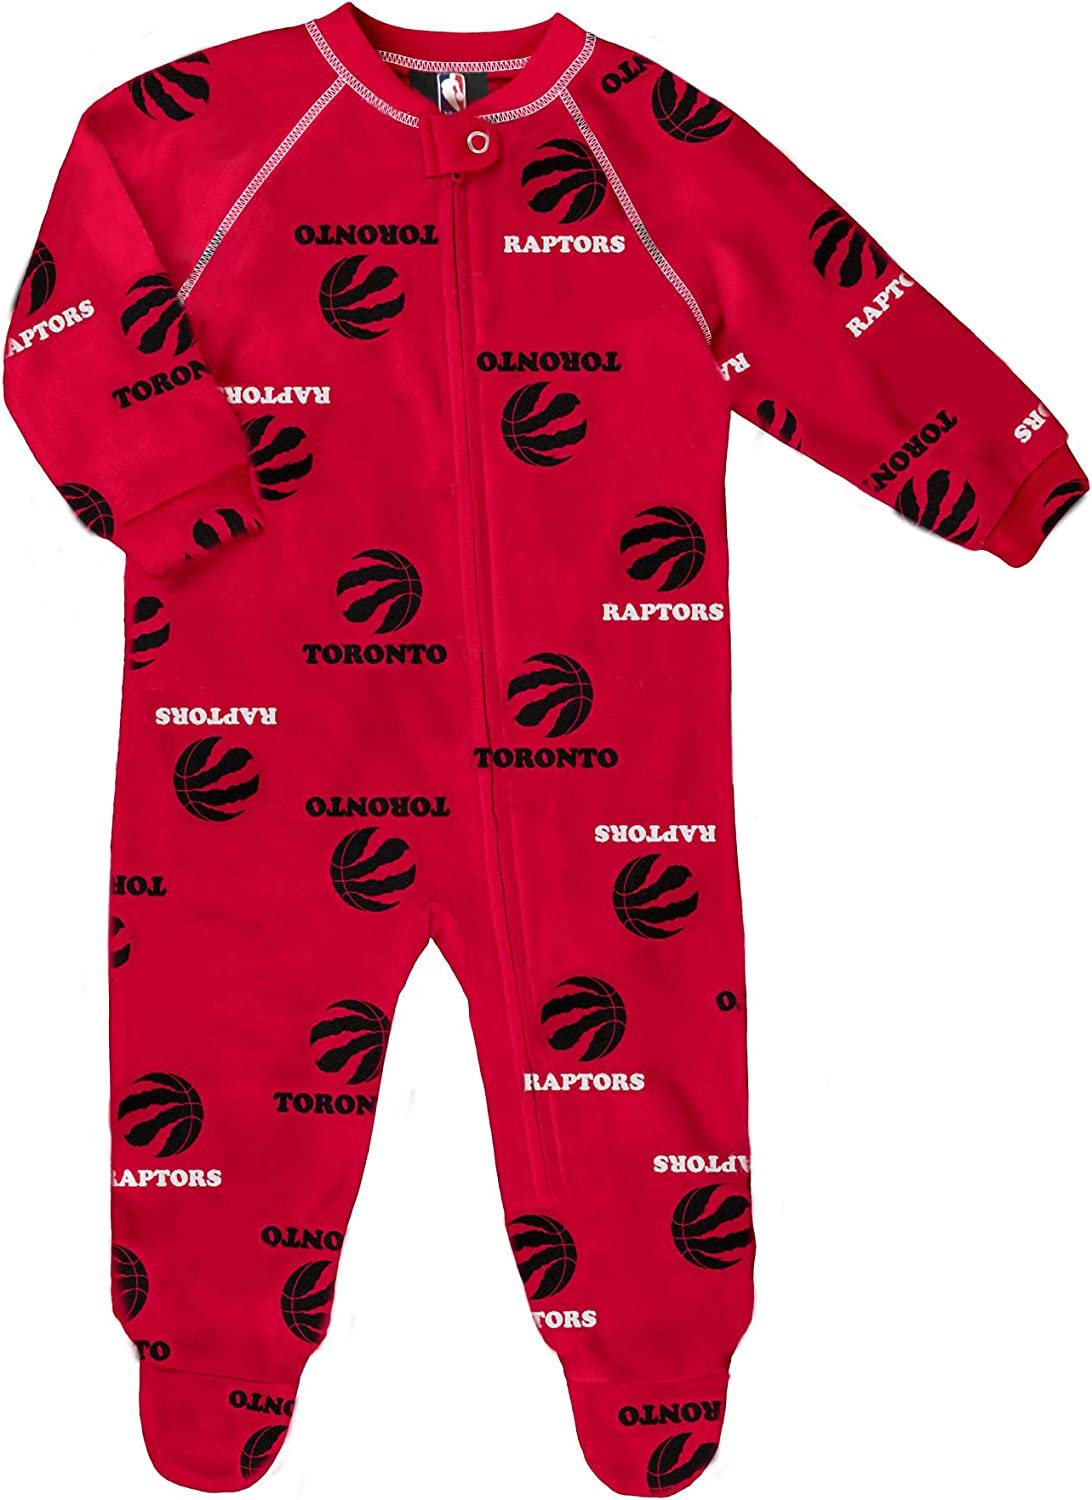 OuterStuff Toronto Raptors Newborn All Over Print Raglan Sleeper